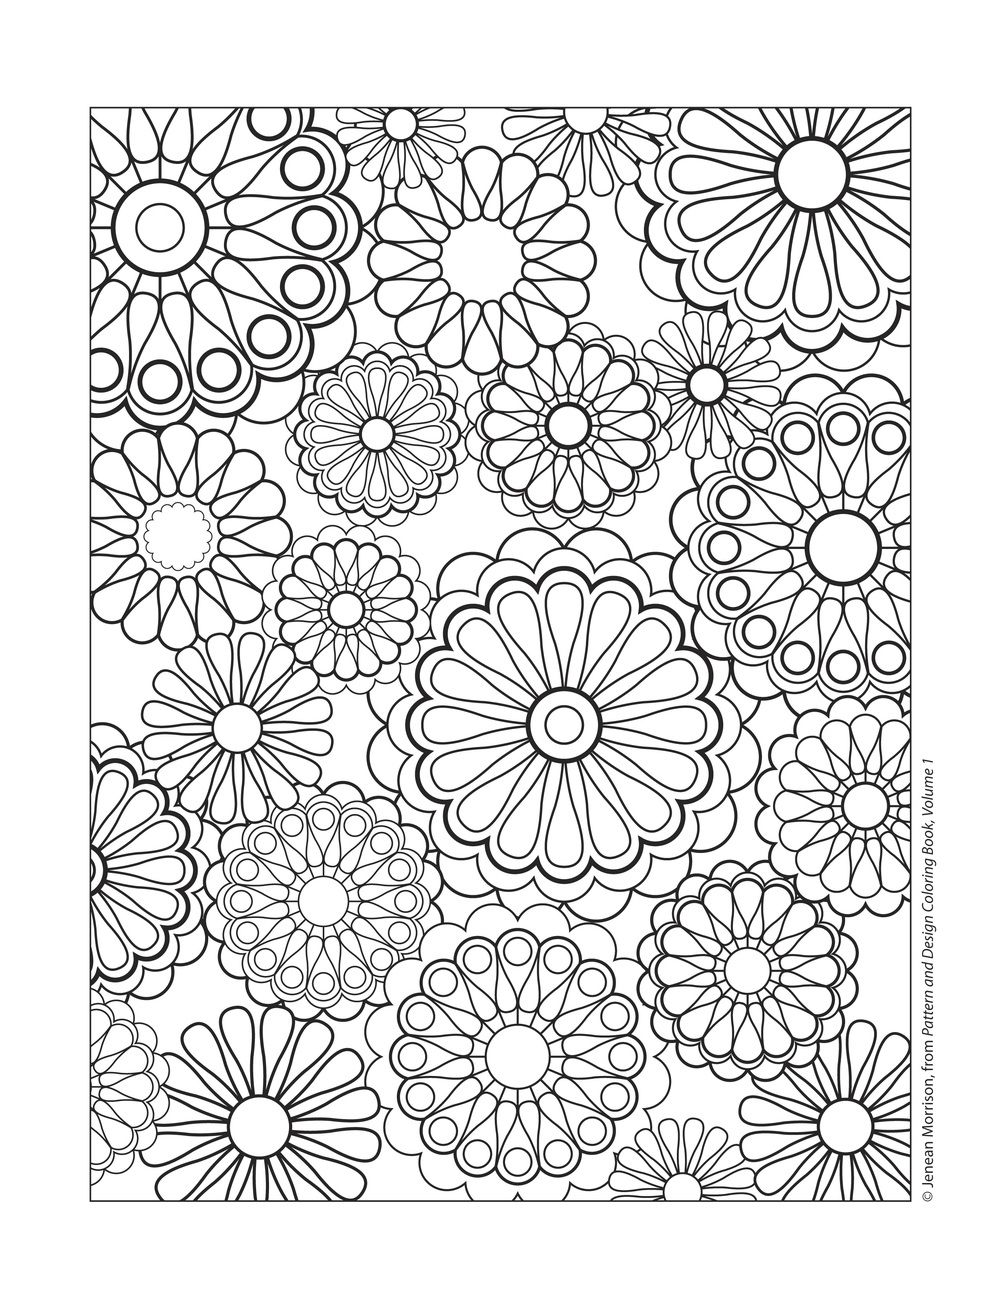 Free coloring pages kaleidoscope designs - Design Patterns Coloring Pages Free Coloring Pages